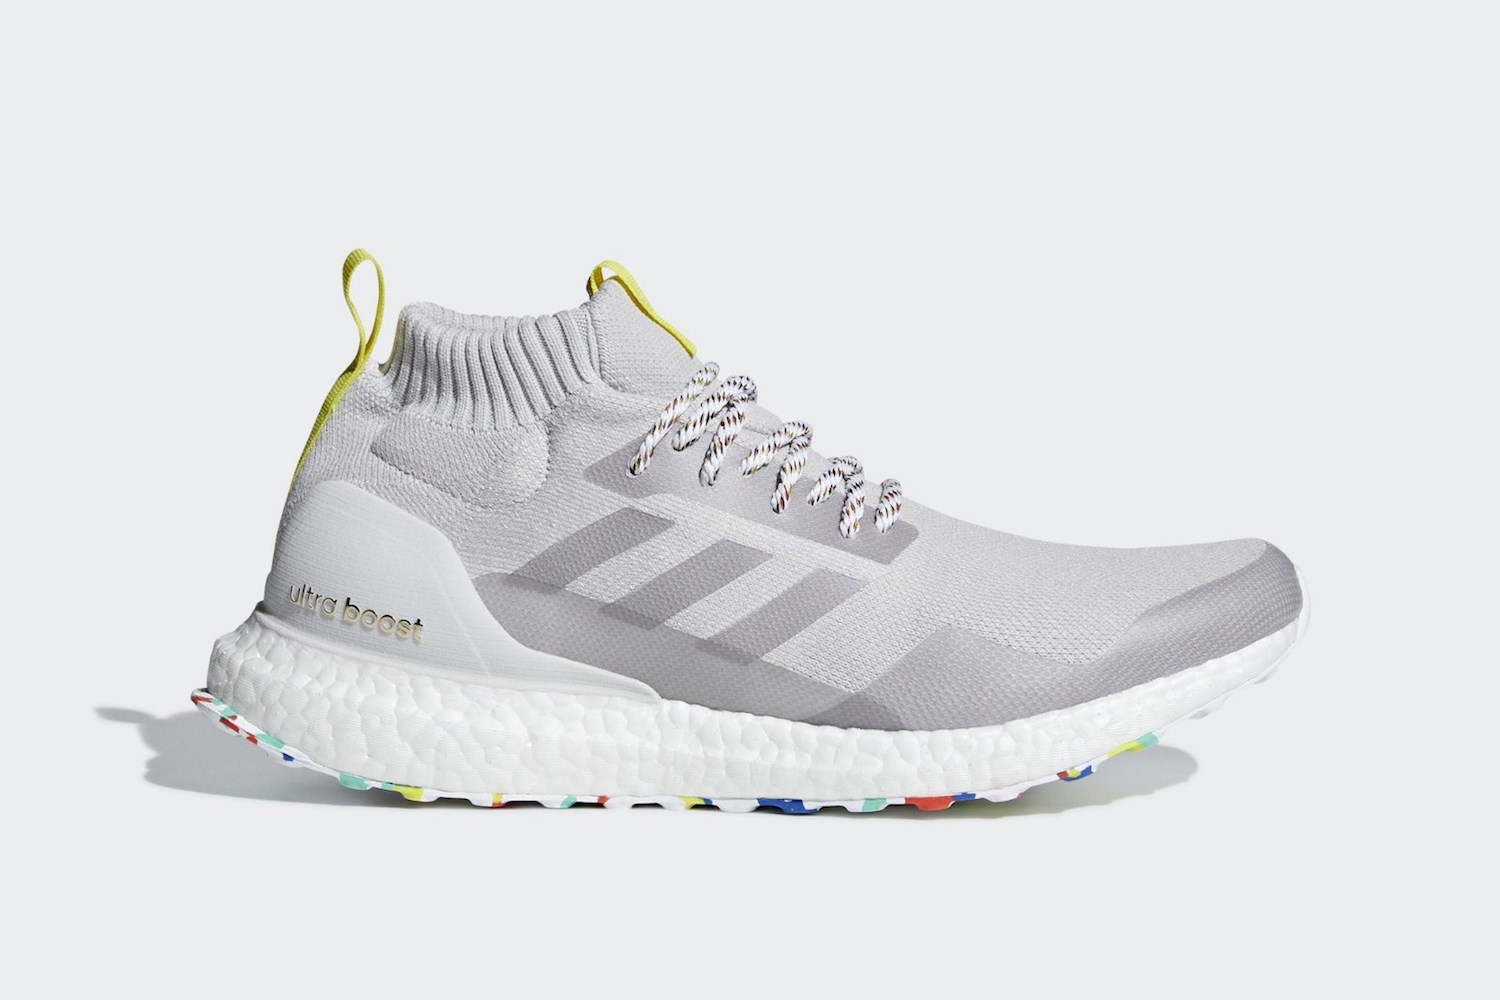 adidas UltraBOOST Mid 全新「Multicolor Sole」系列